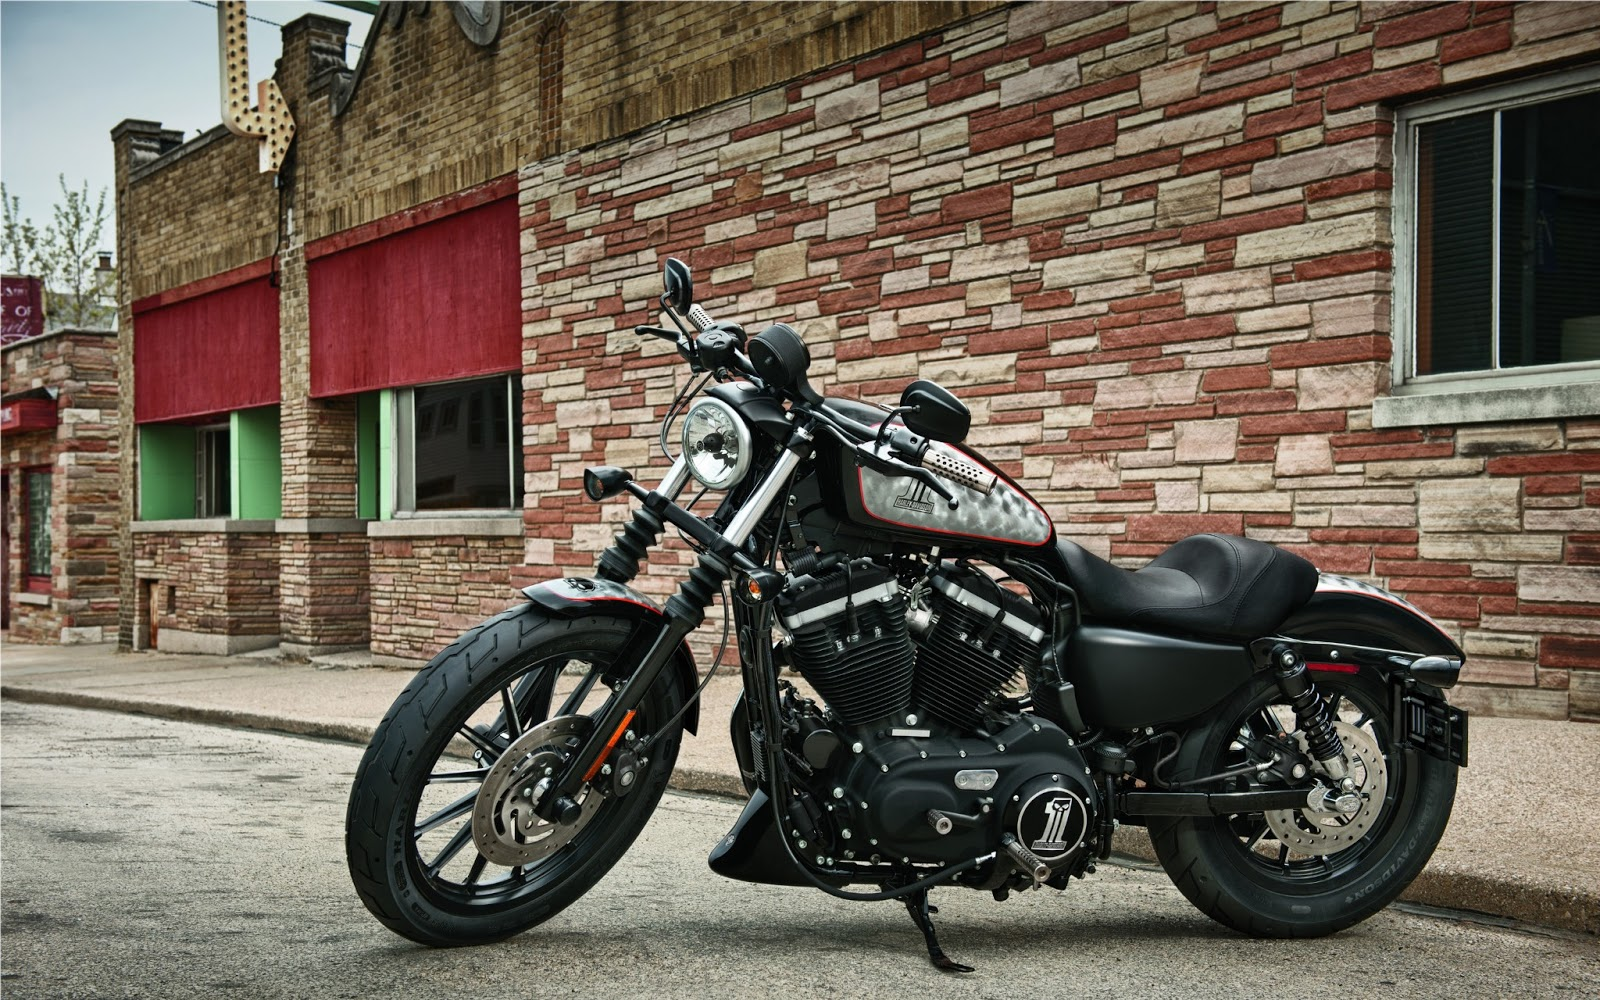 Harley Davidson Iron 883 HD Wallpapers | HD Wallpapers ...